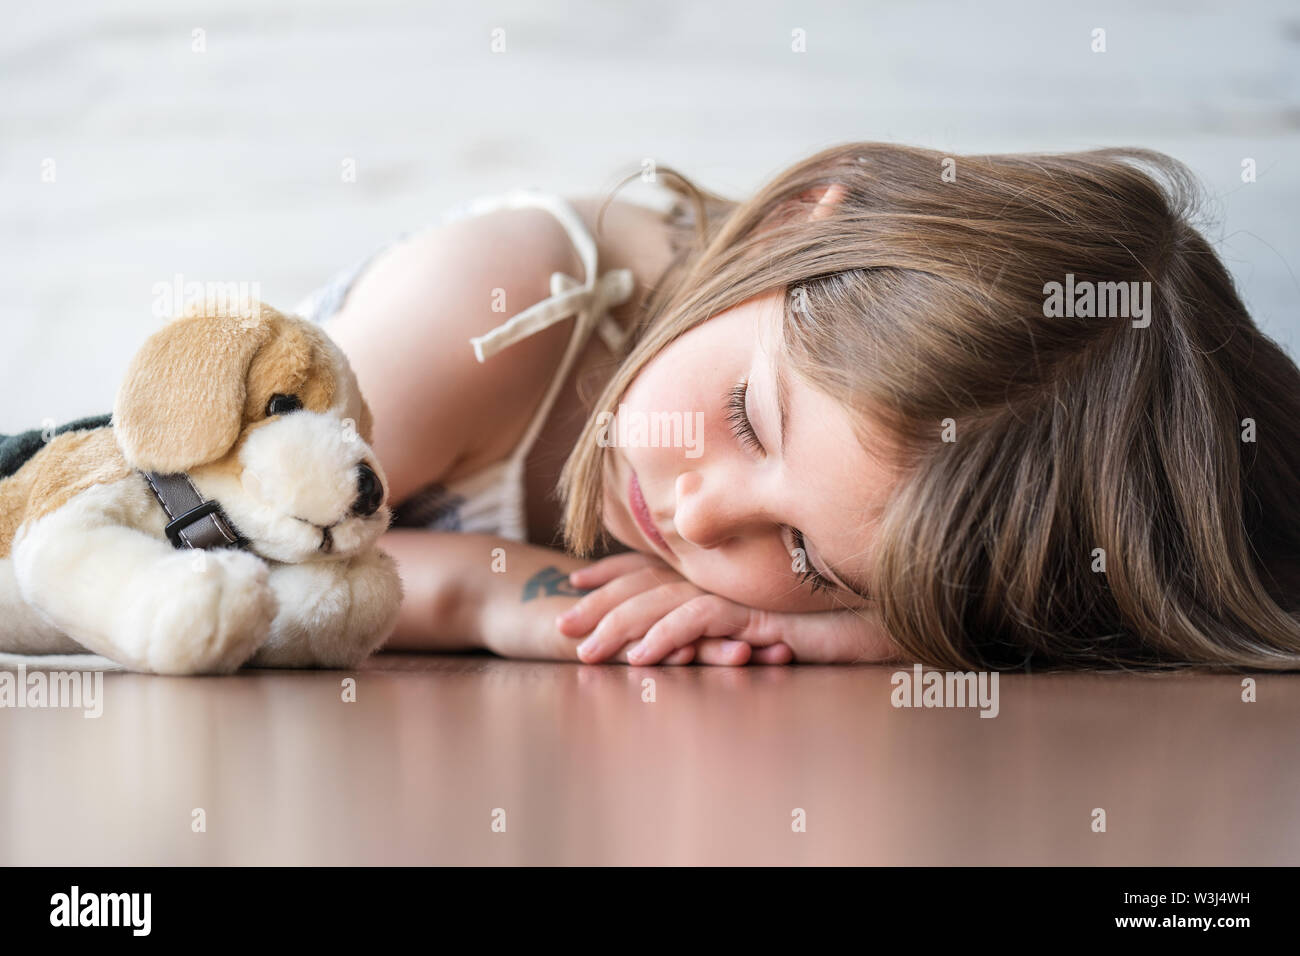 Portrait of beautiful little girl sleeping with her favorite plush stuffed animal dog doll toy. - Stock Image